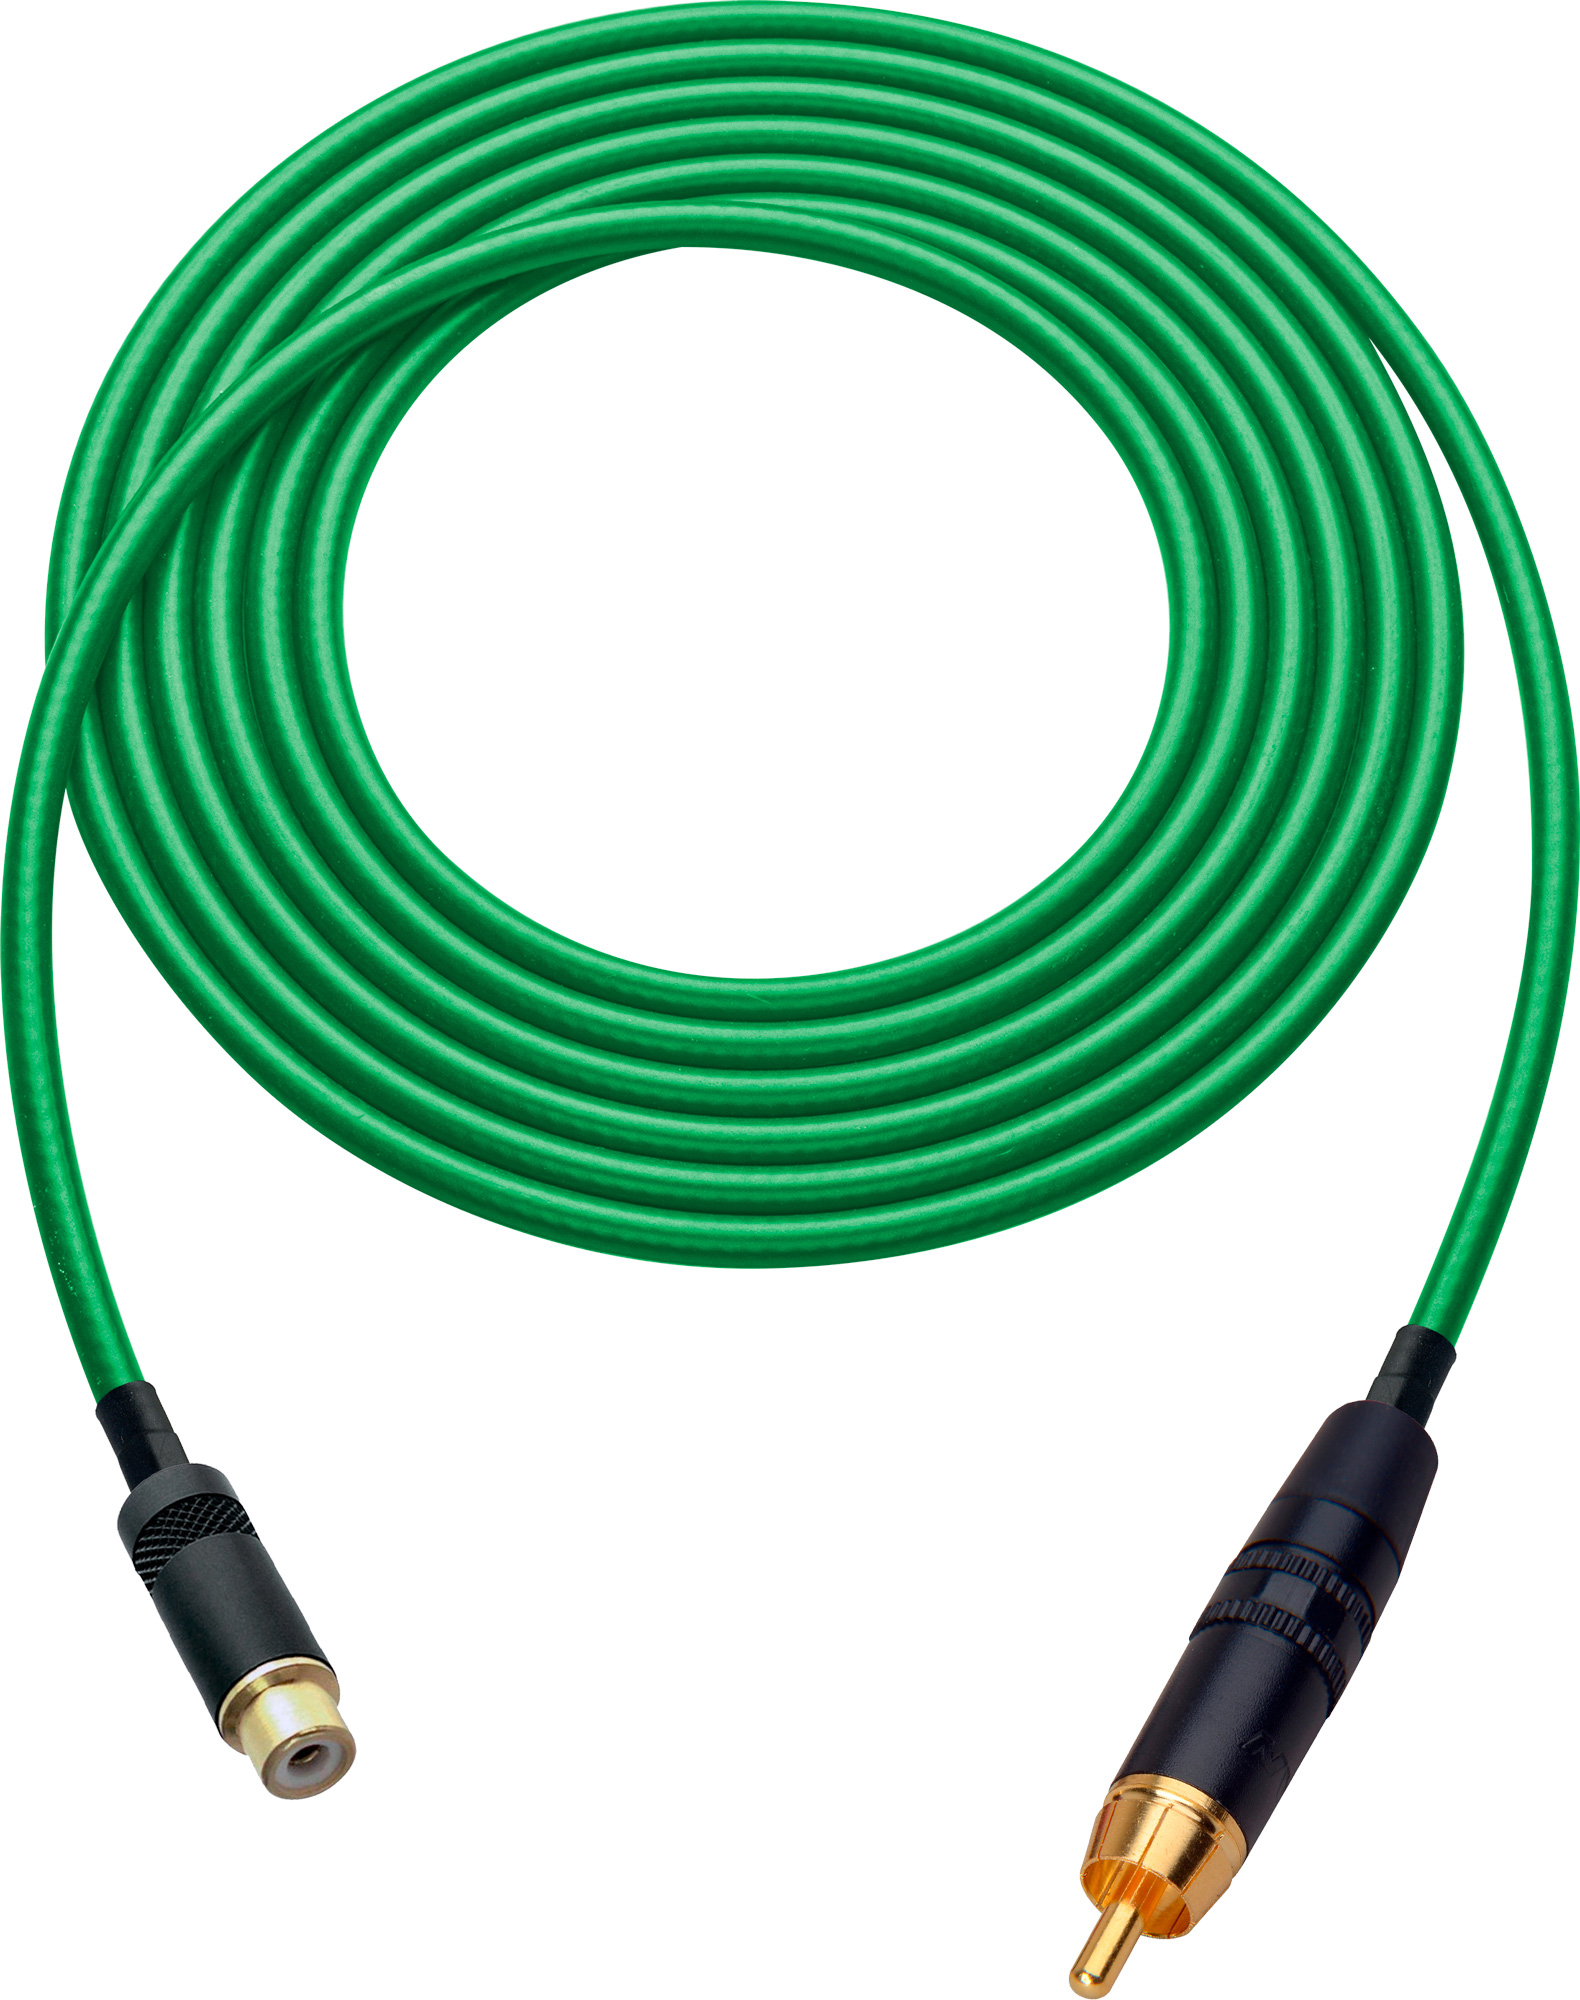 Laird HDAV-EXT-10-GN Belden 1505A RCA M to F Extension Cable For Audio or HD Video - 10 Foot Green